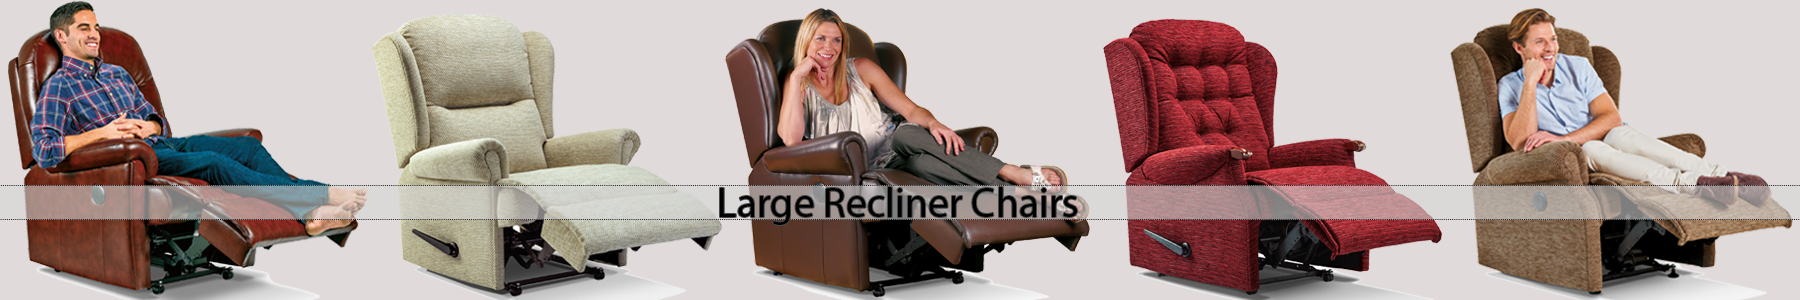 Large Recliner Chairs